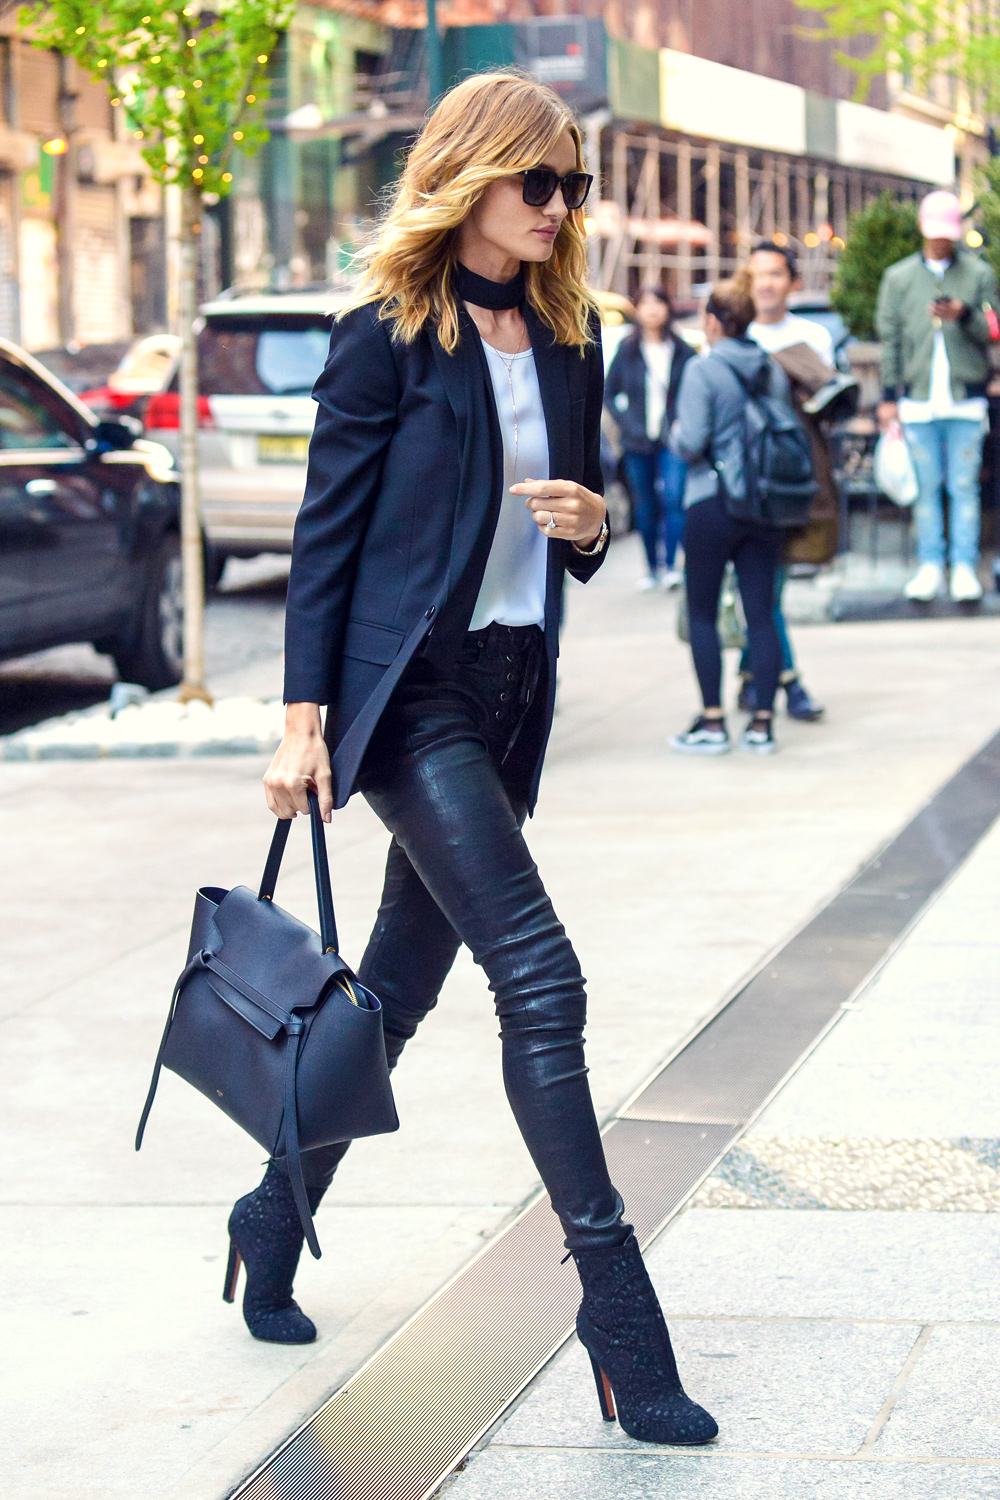 RHW Rosie Huntington-Whitely leather celebrities style